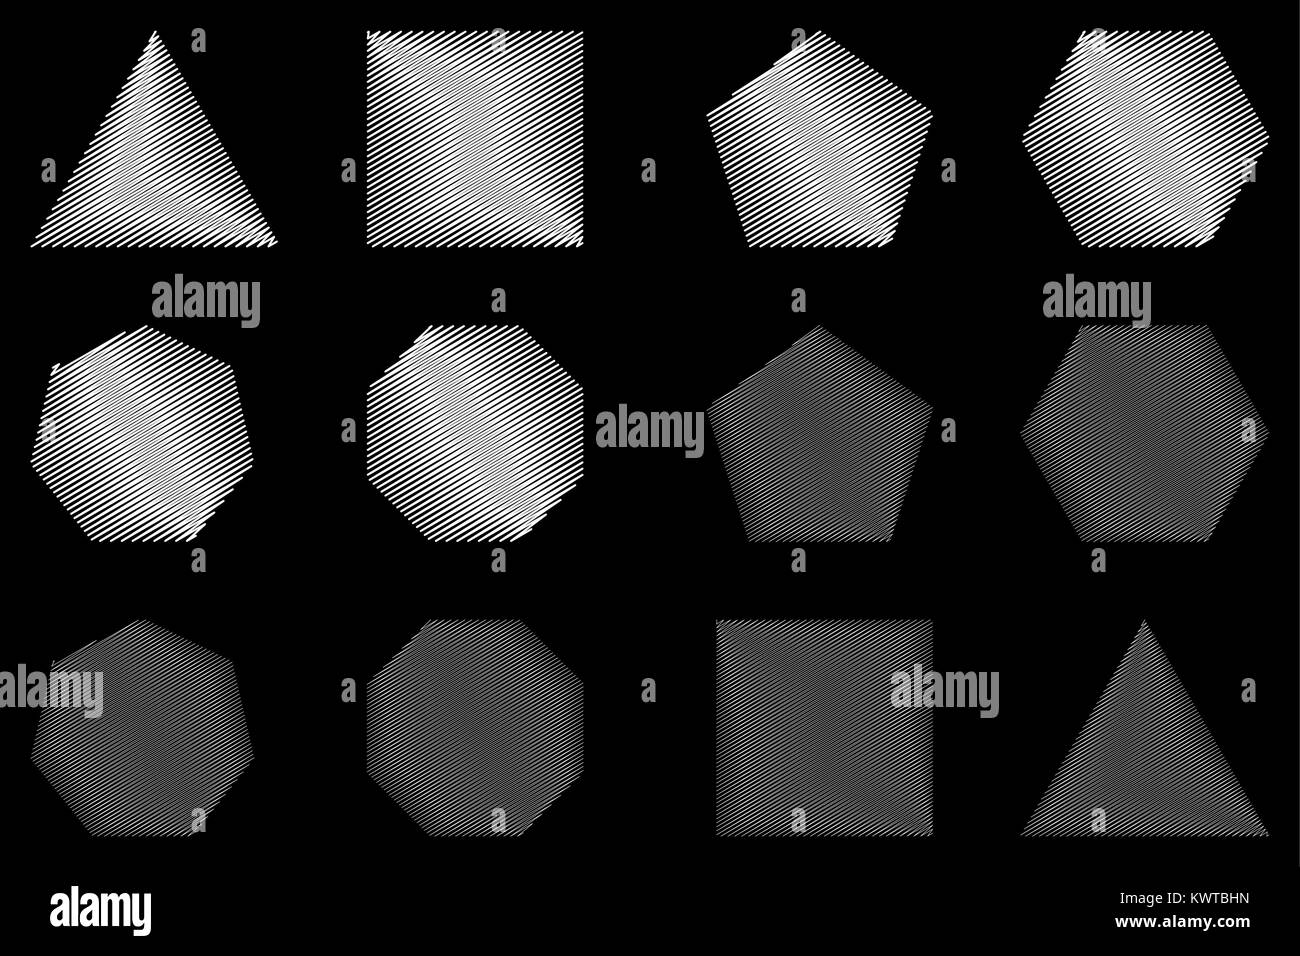 Heptagon Shapes Stock Photos Amp Heptagon Shapes Stock